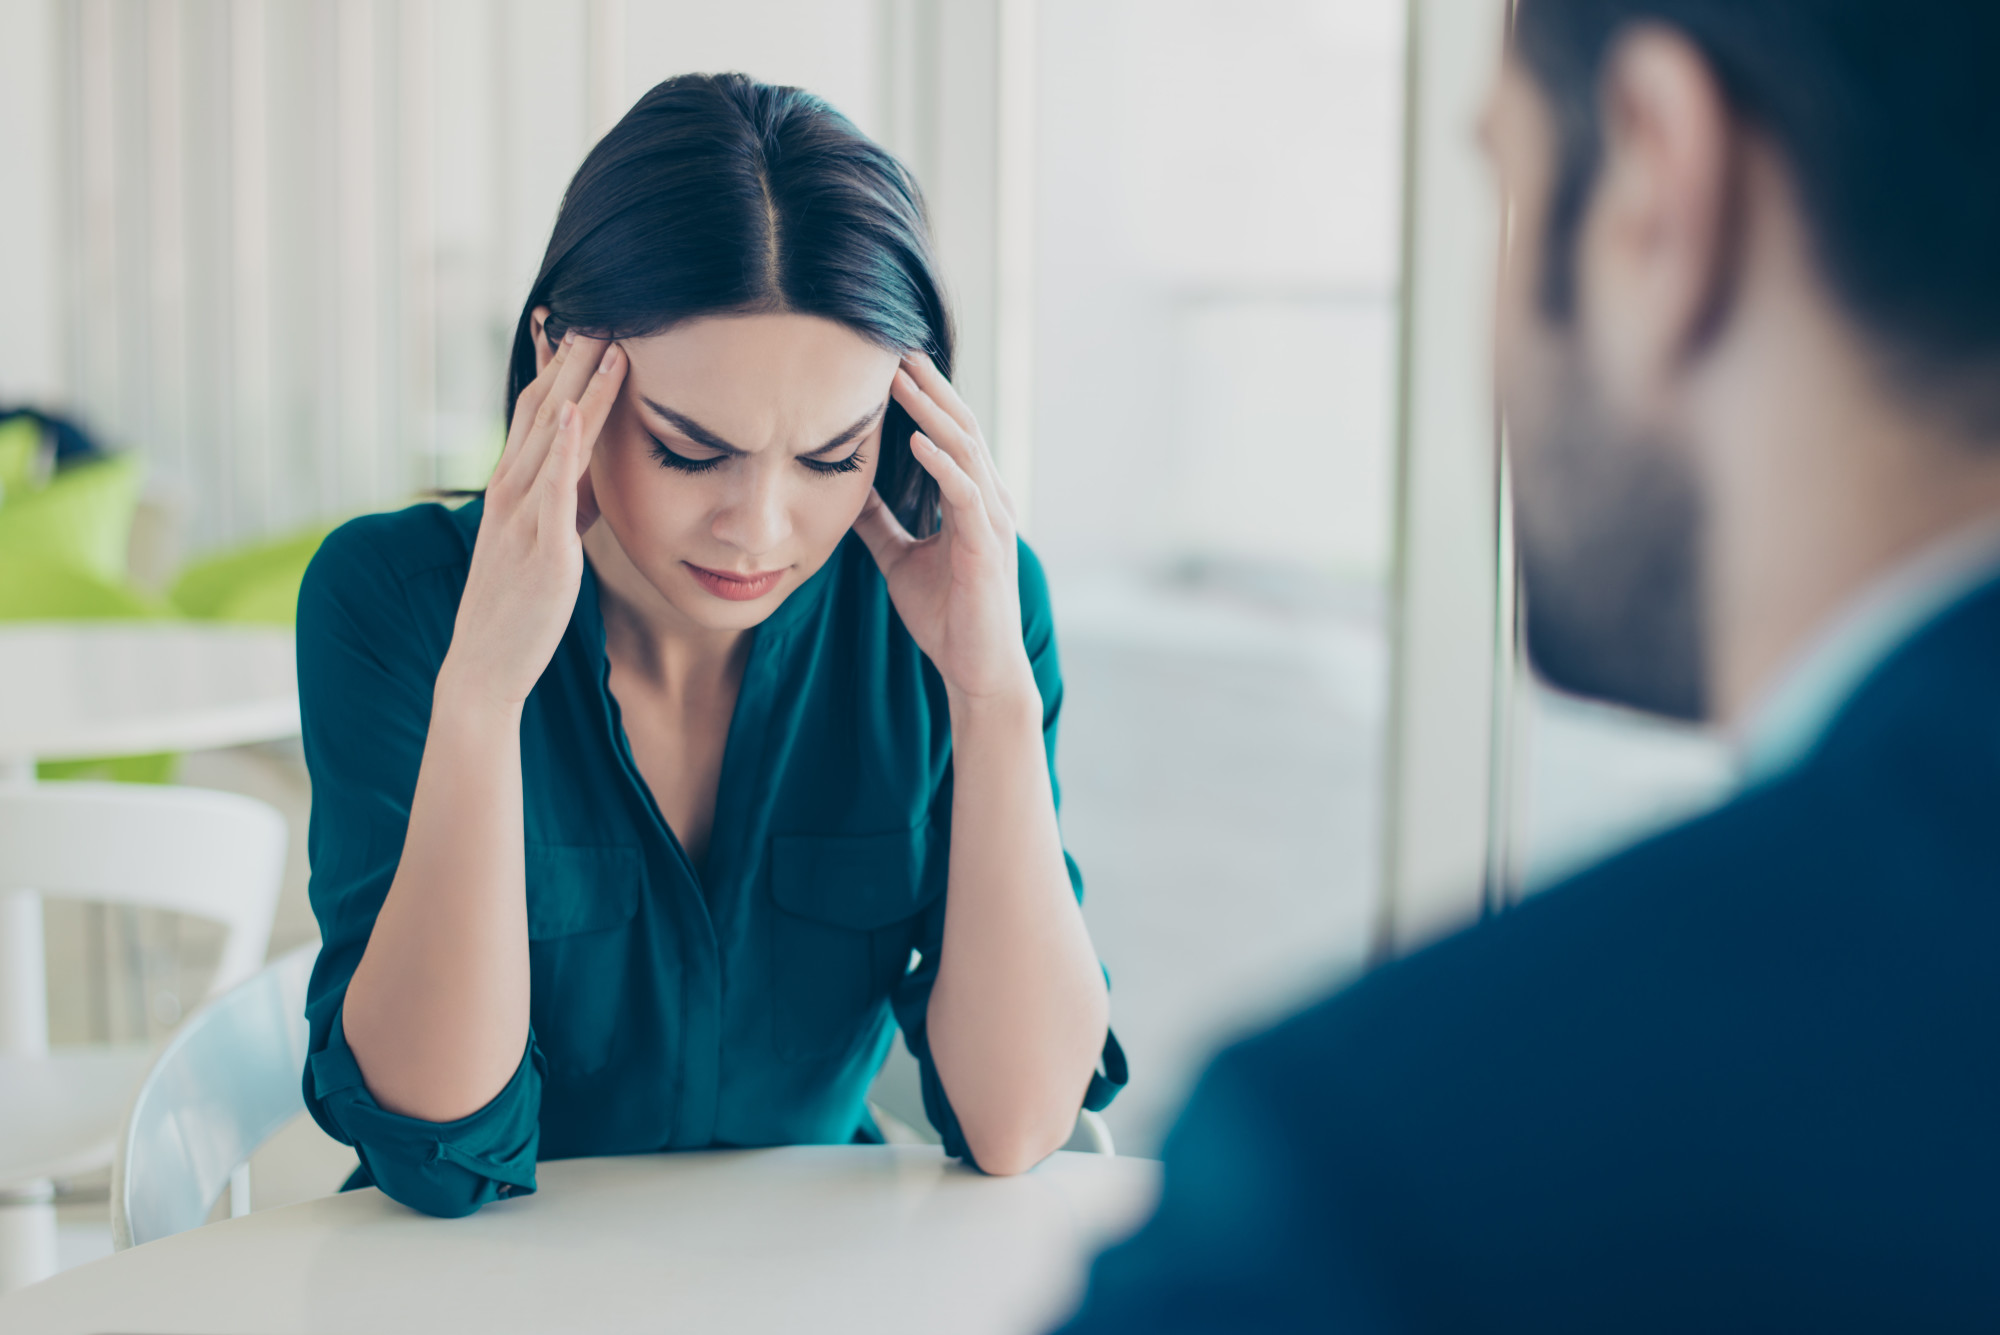 How to Be Gracious in Difficult Situations